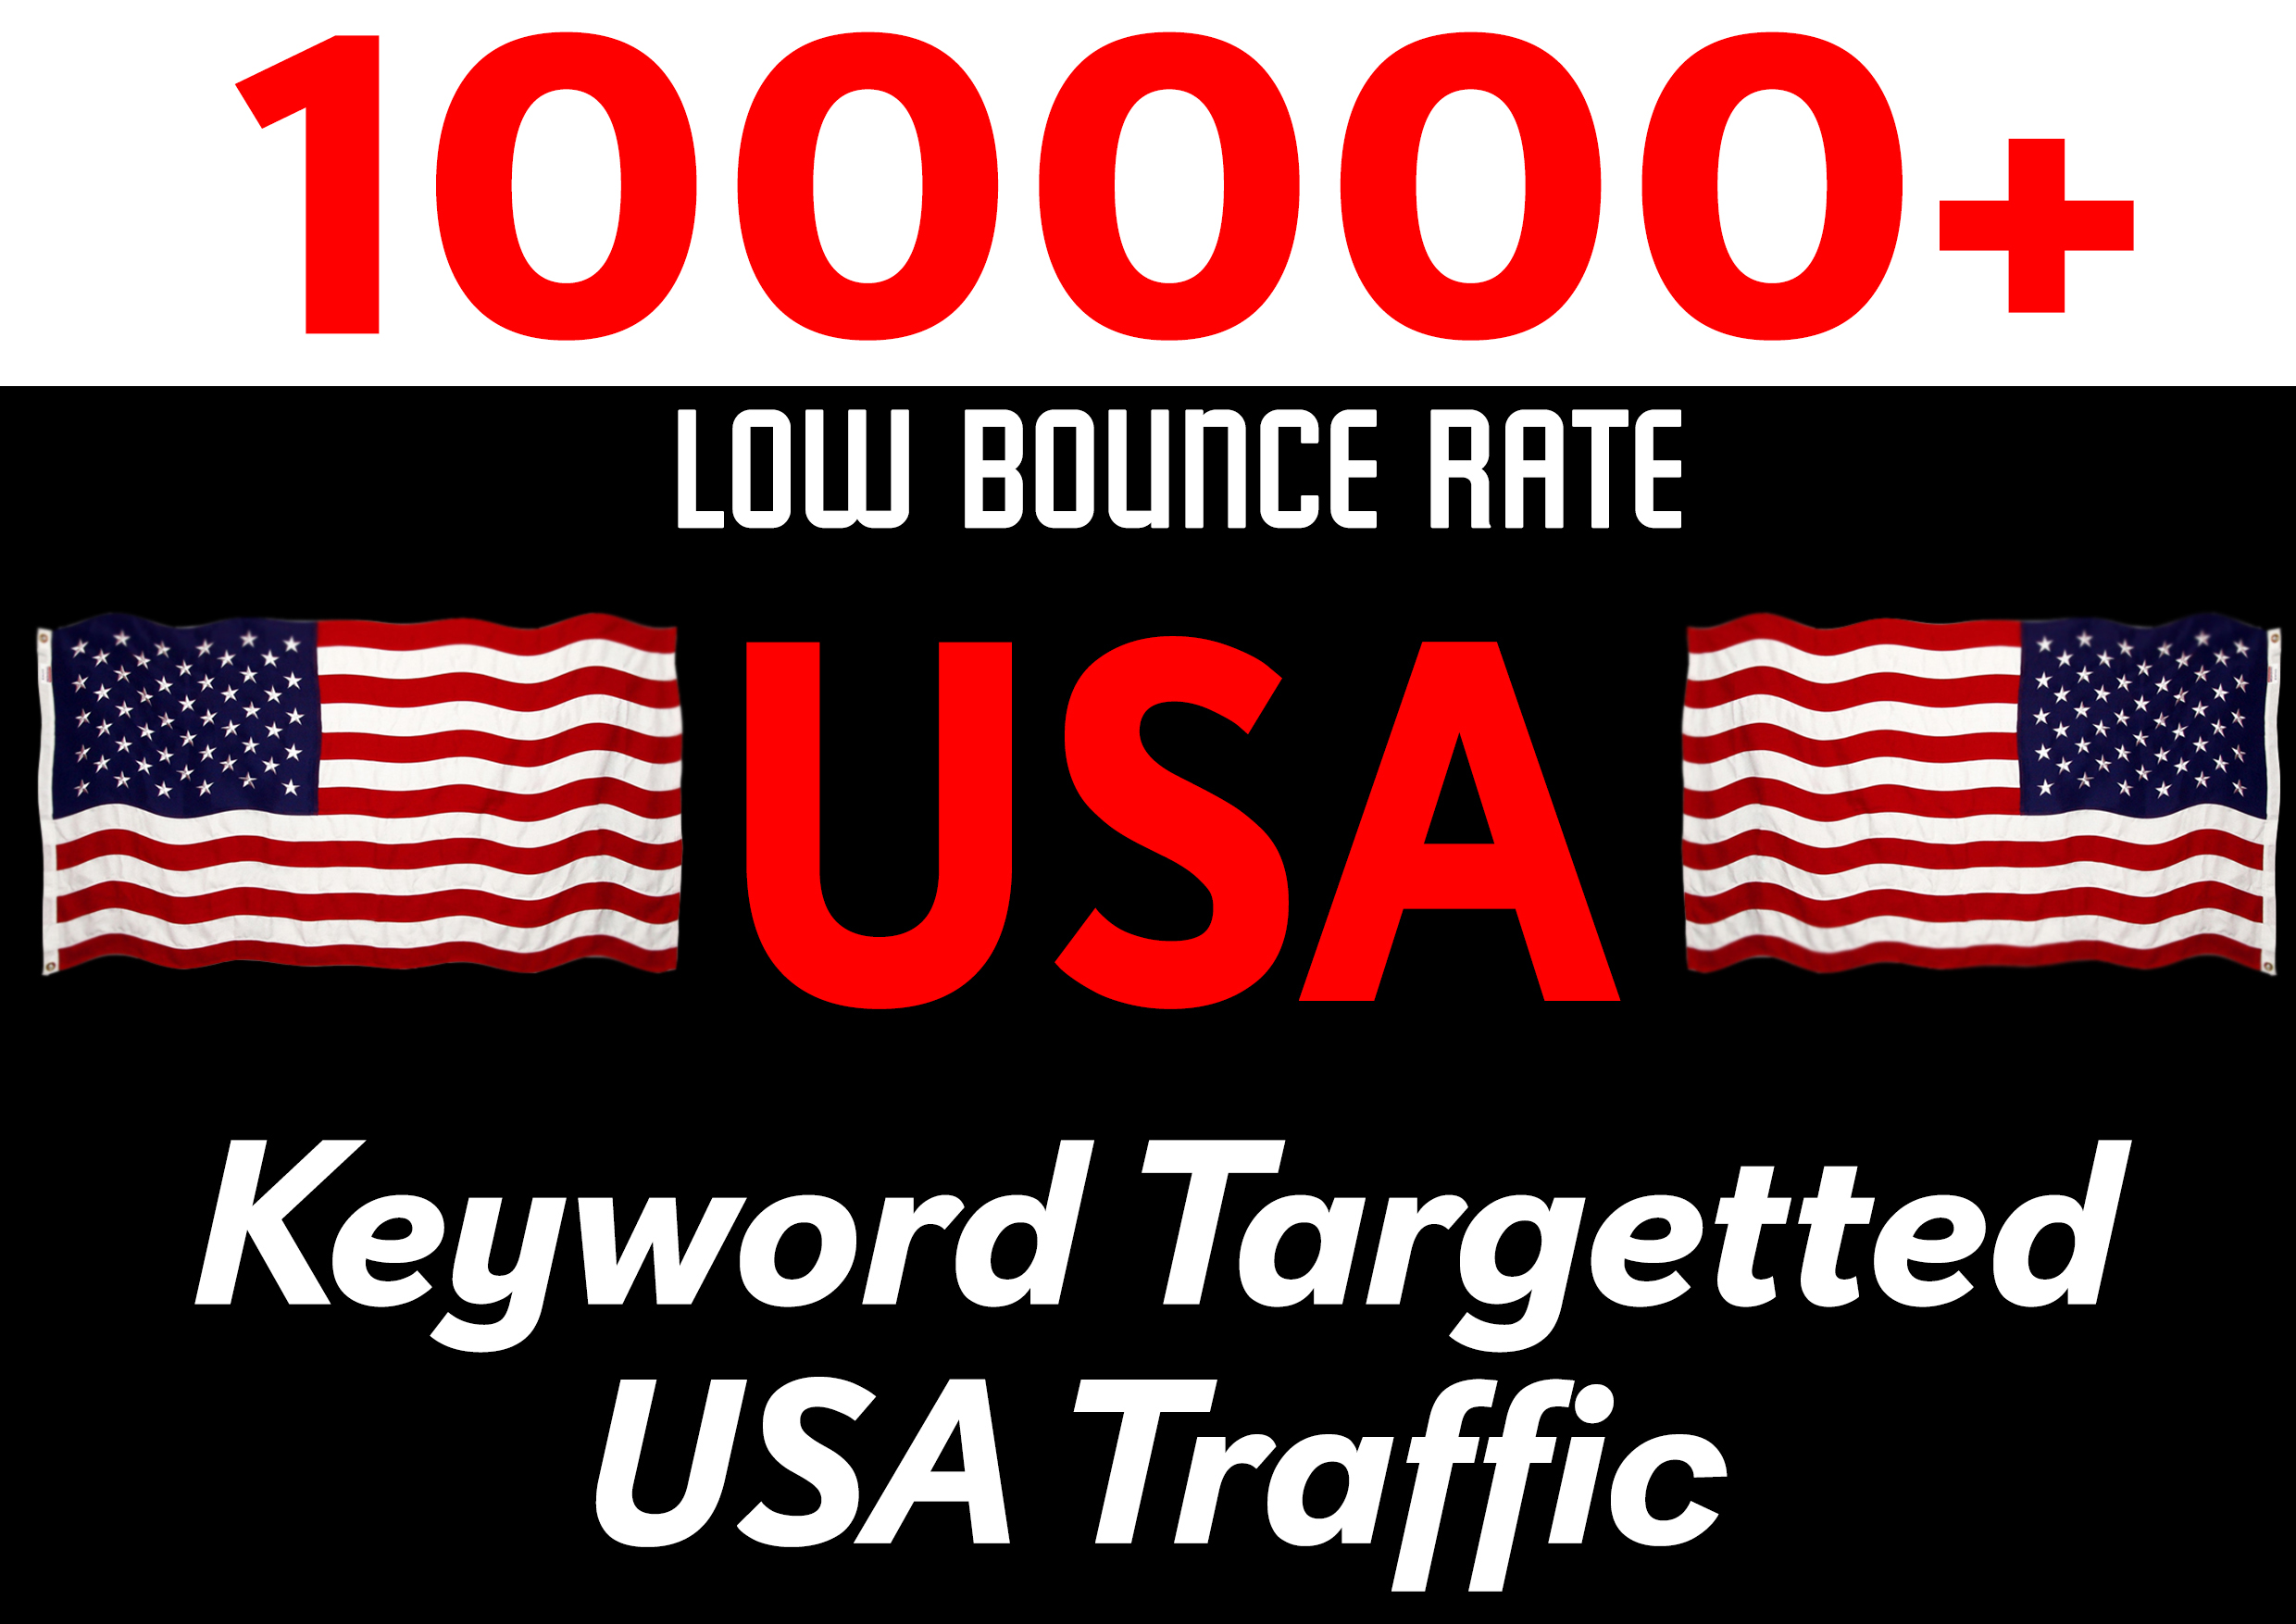 Drive 100000+ Low Bounce Rate USA Keyword Targeted Traffic